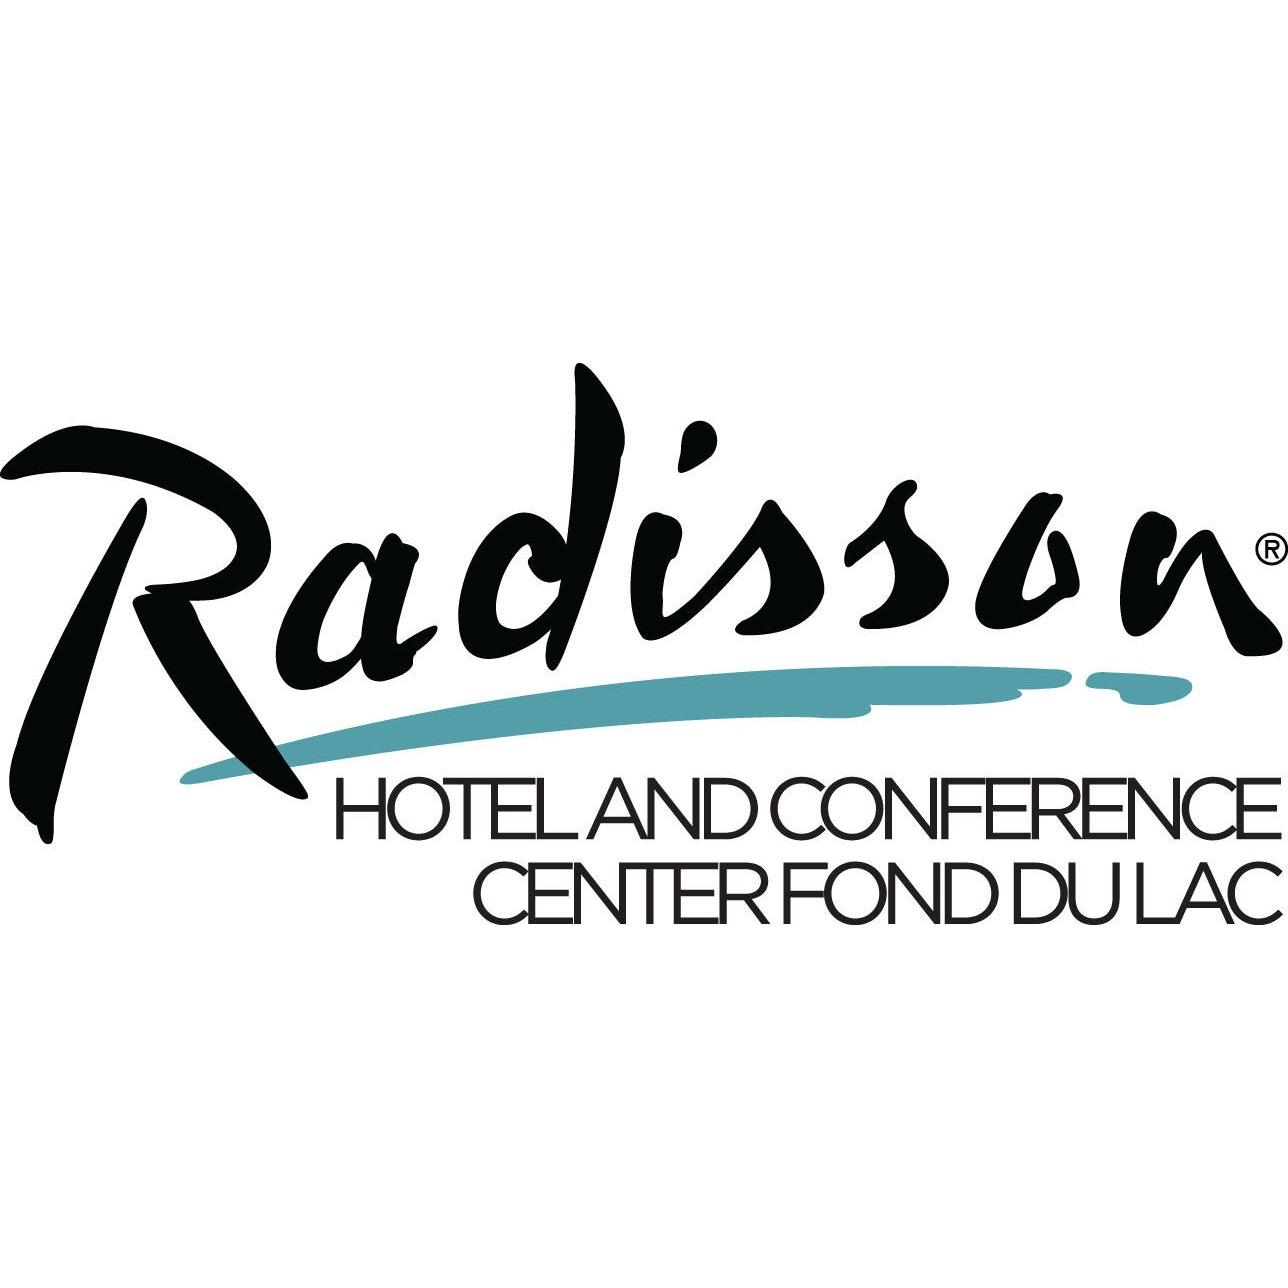 Radisson Hotel and Conference Center Fond du Lac